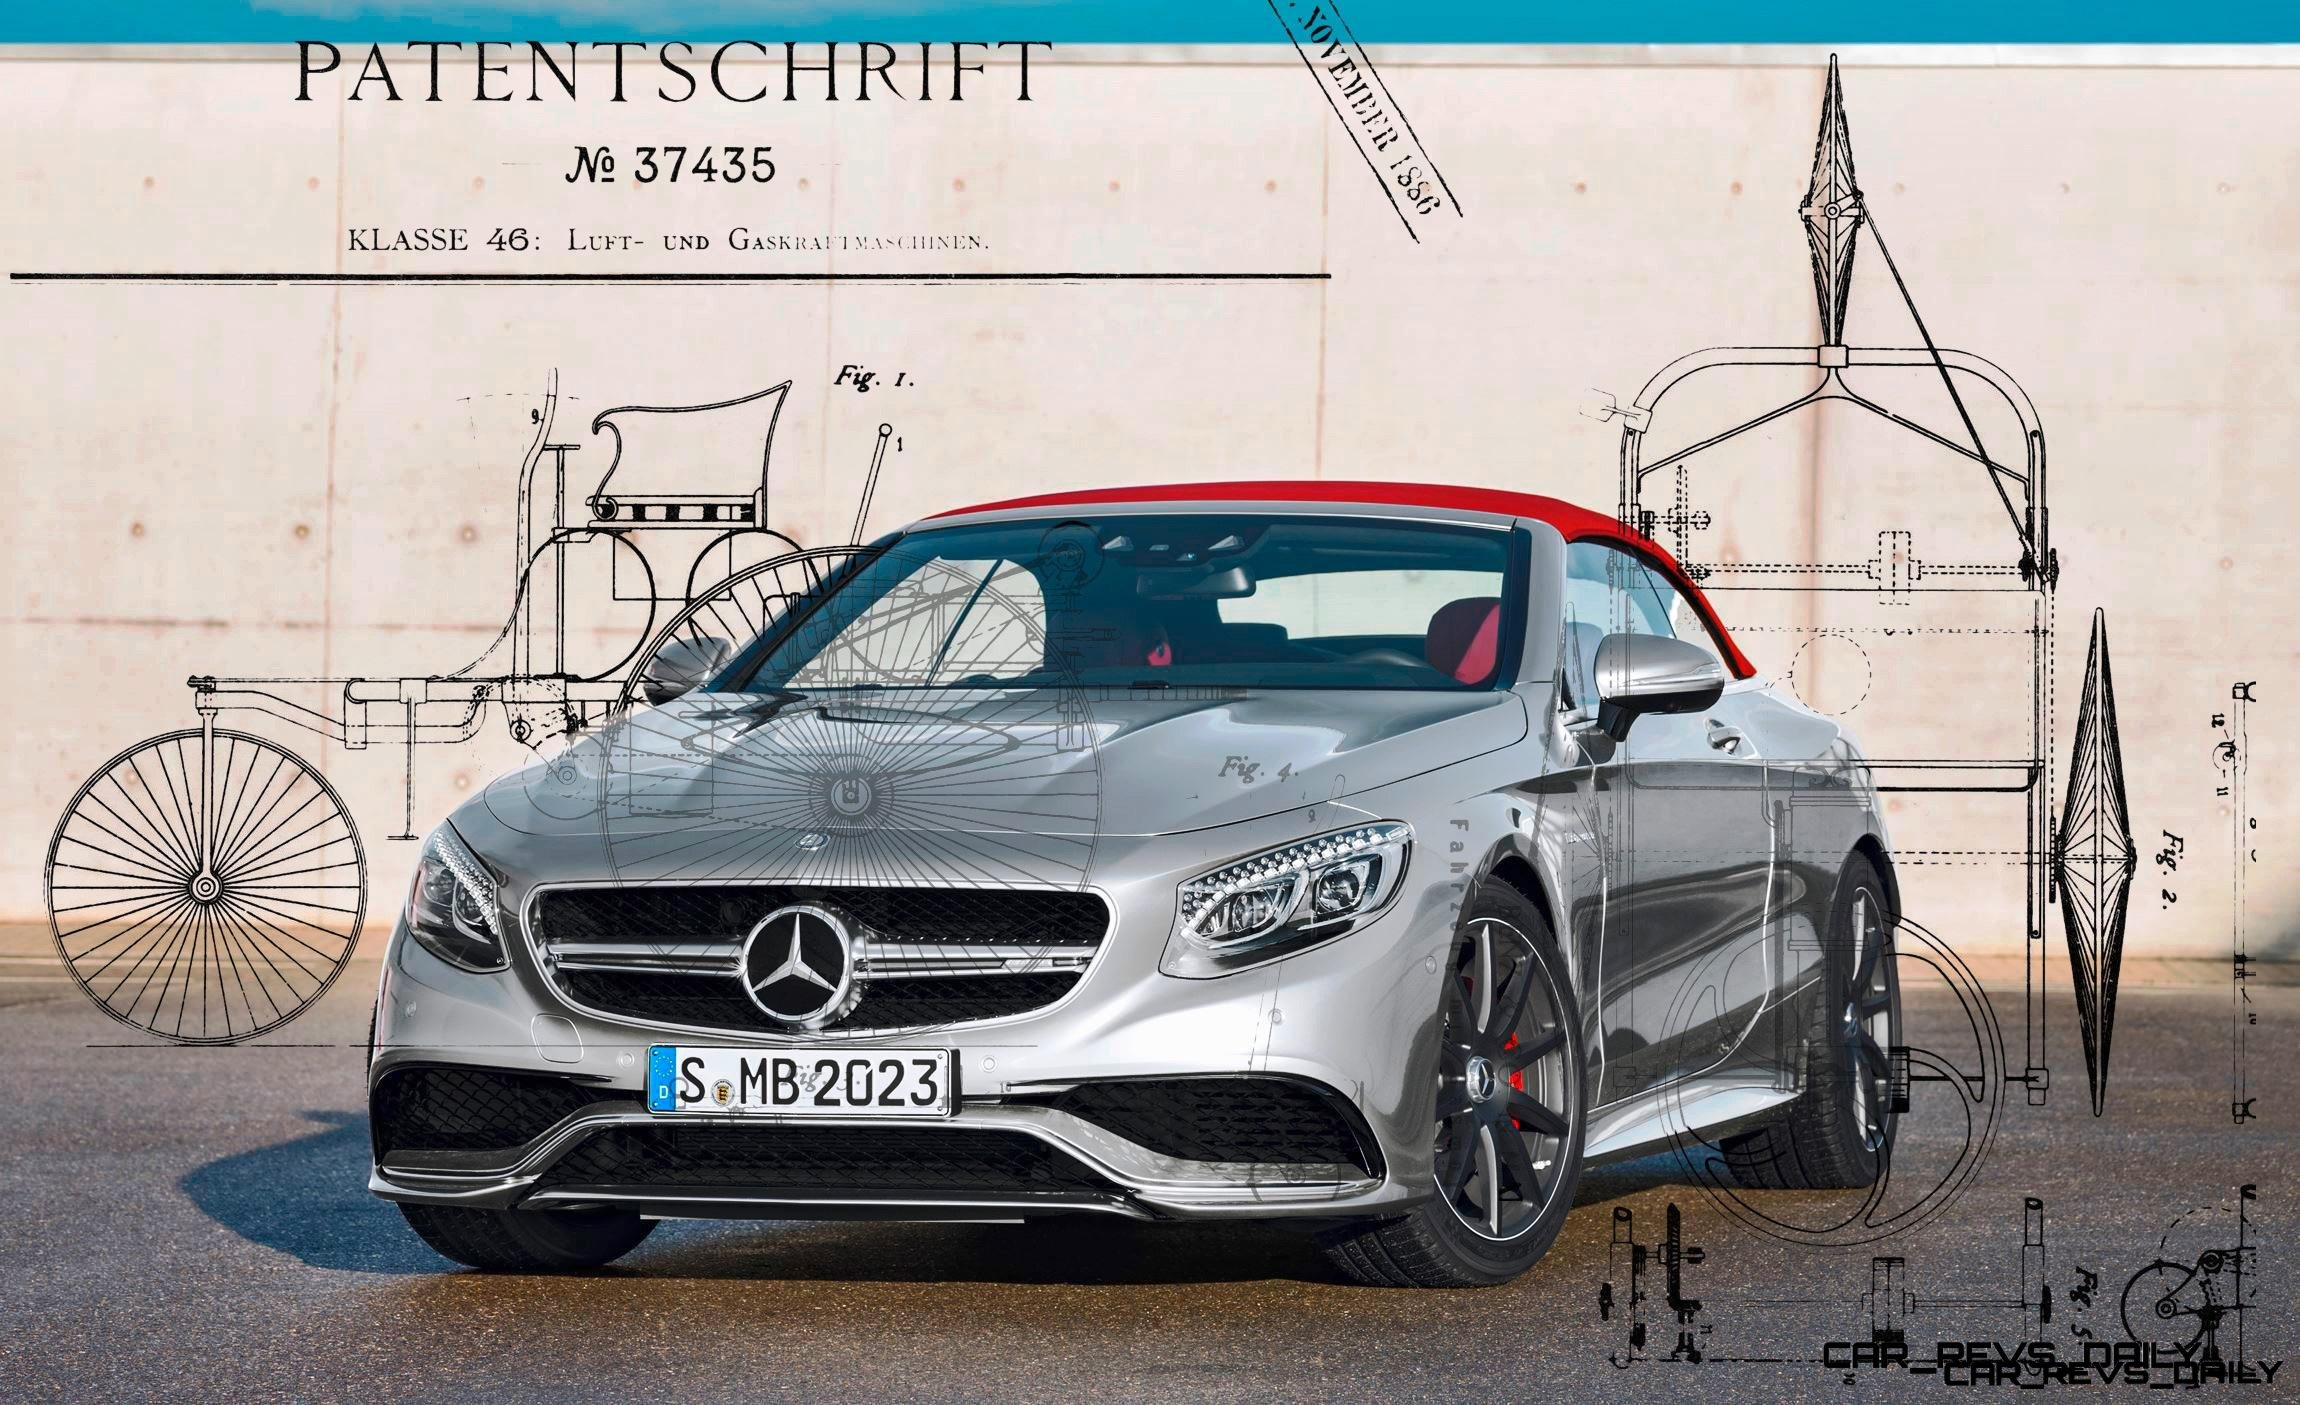 2016-Mercedes-AMG-S63-4MATIC-Cabriolet-Edition-130-12312